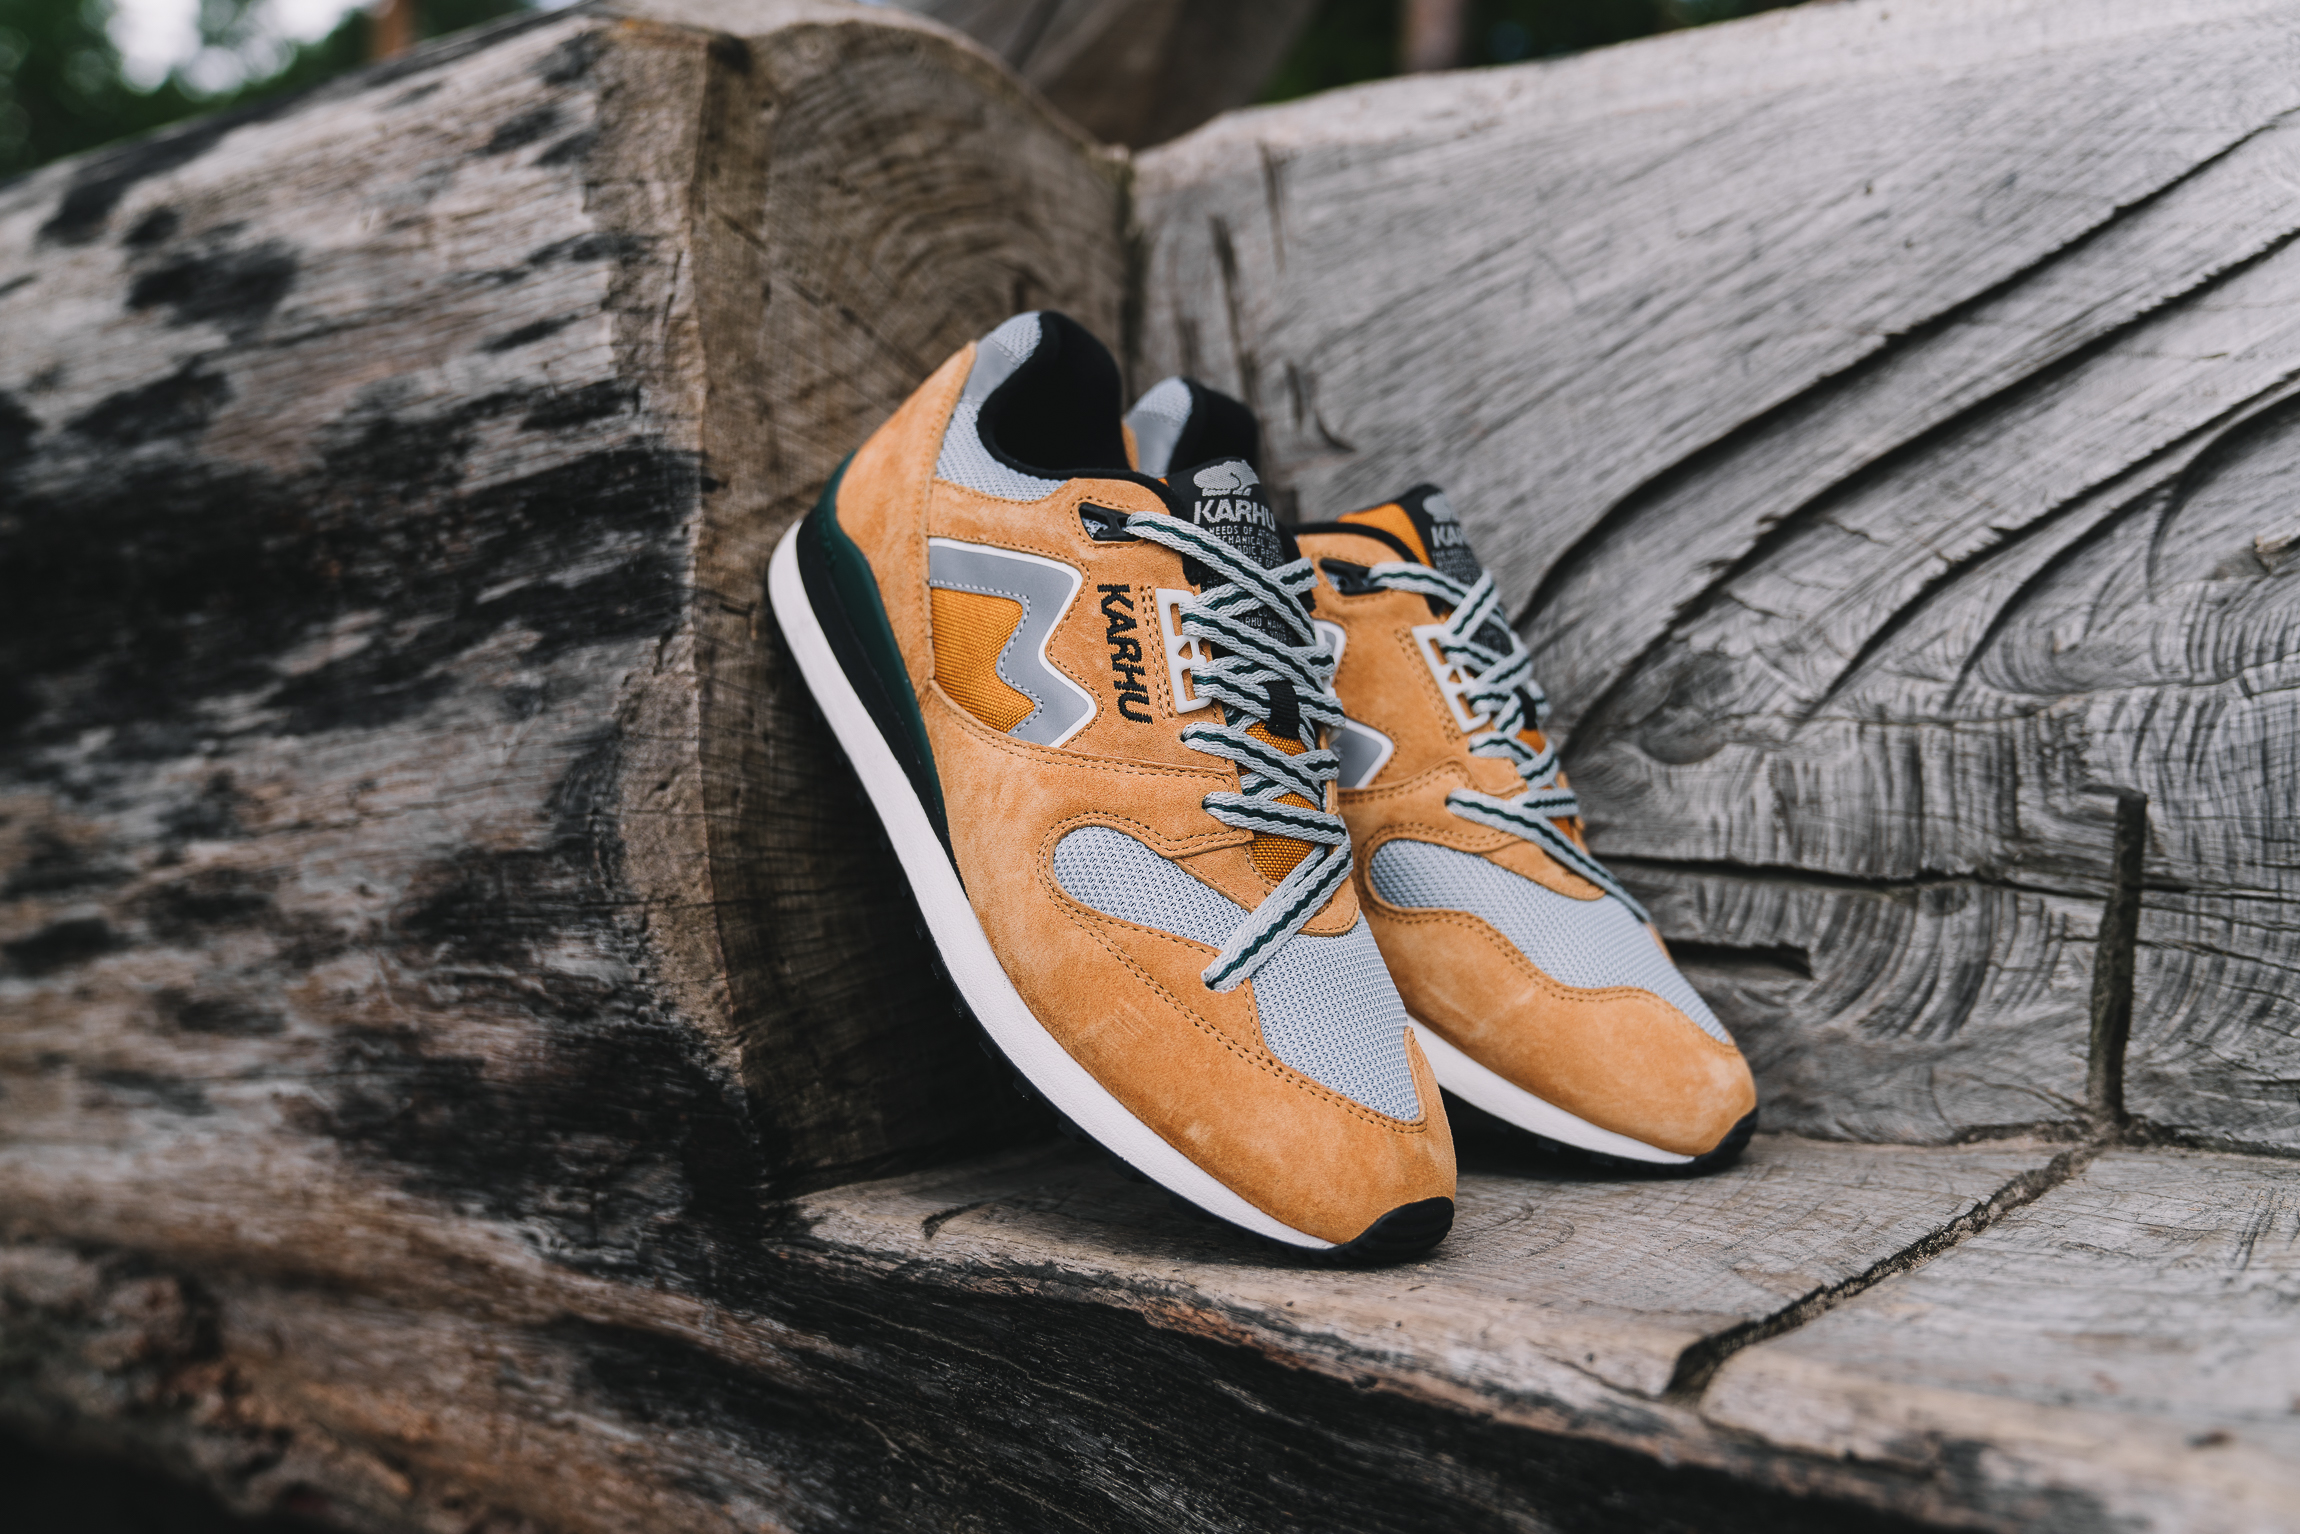 Runnerwally_for_Karhu_outdoor_pack-31